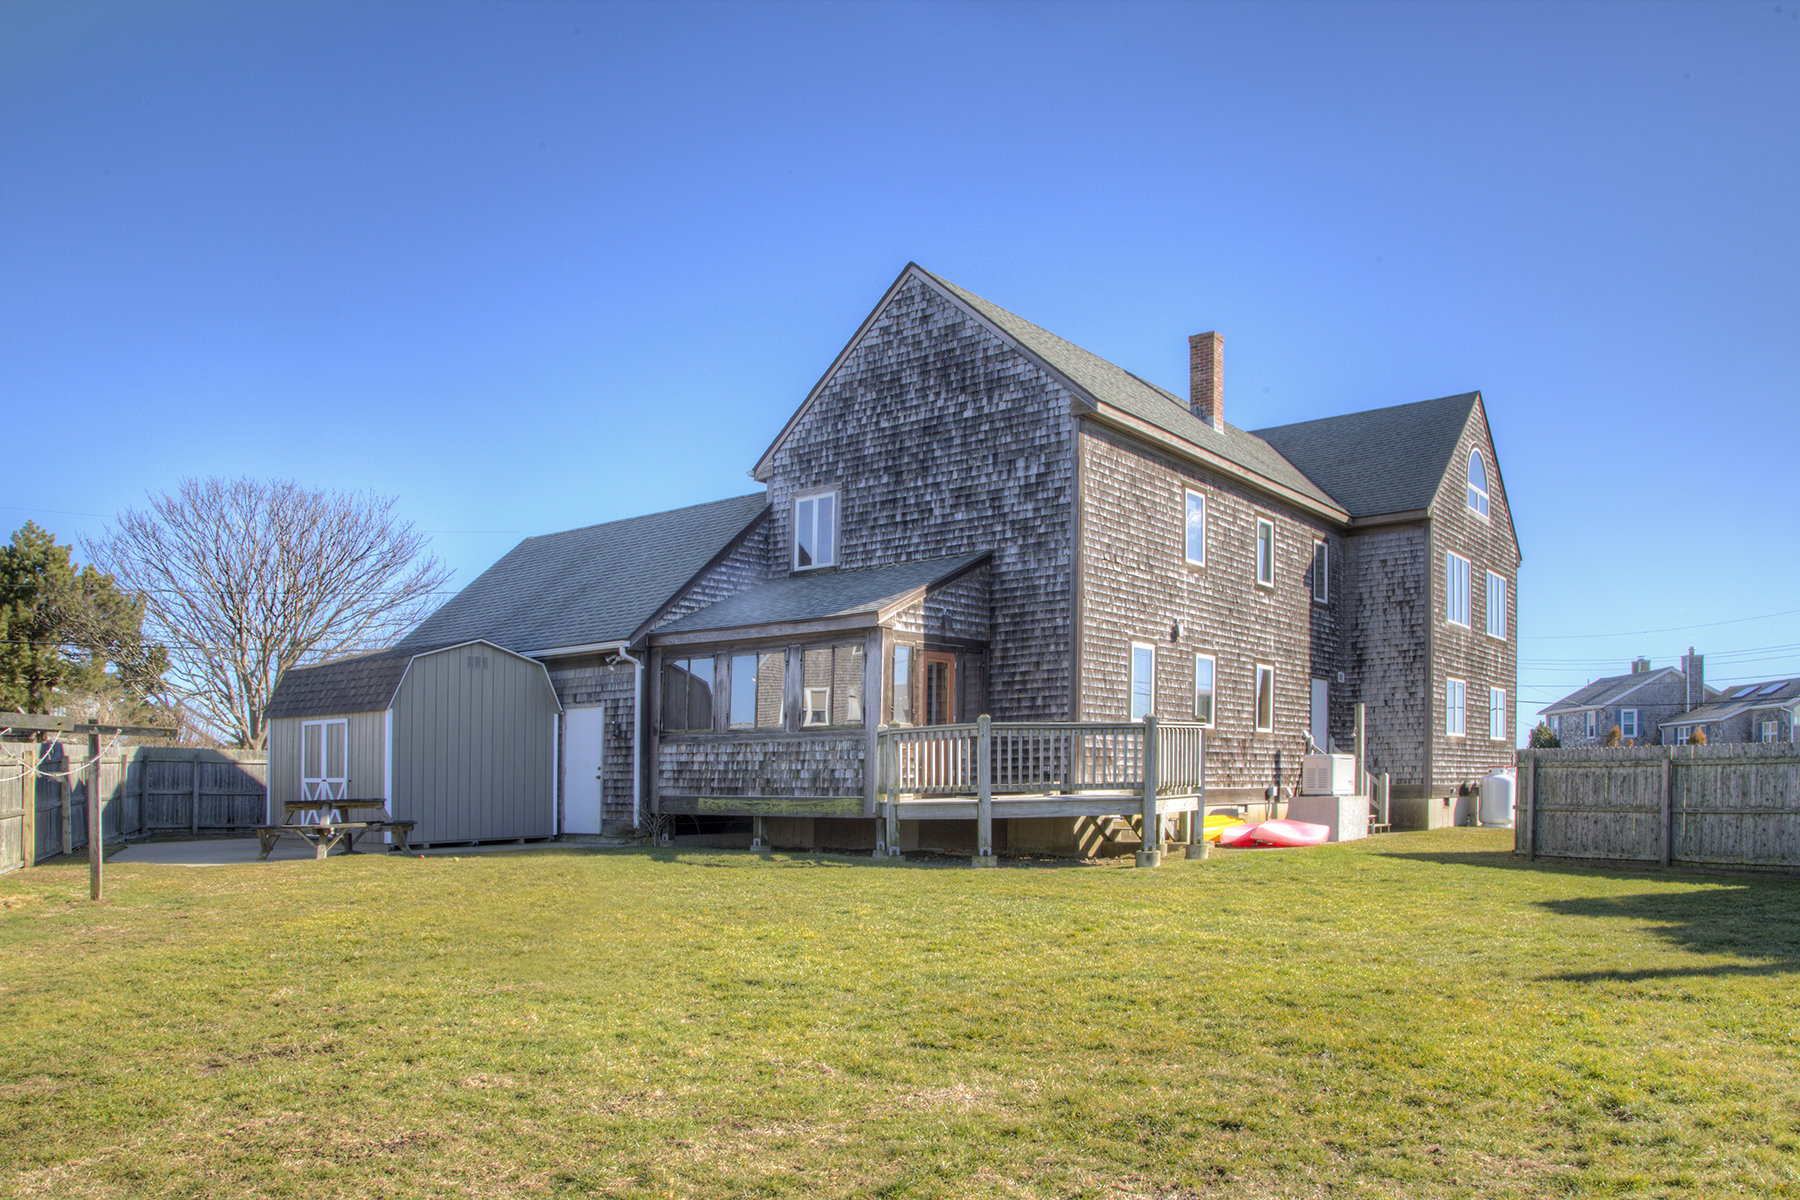 Single Family Home for Sale at Sea Scape 102 Ocean Avenue South Kingstown, Rhode Island 02879 United States